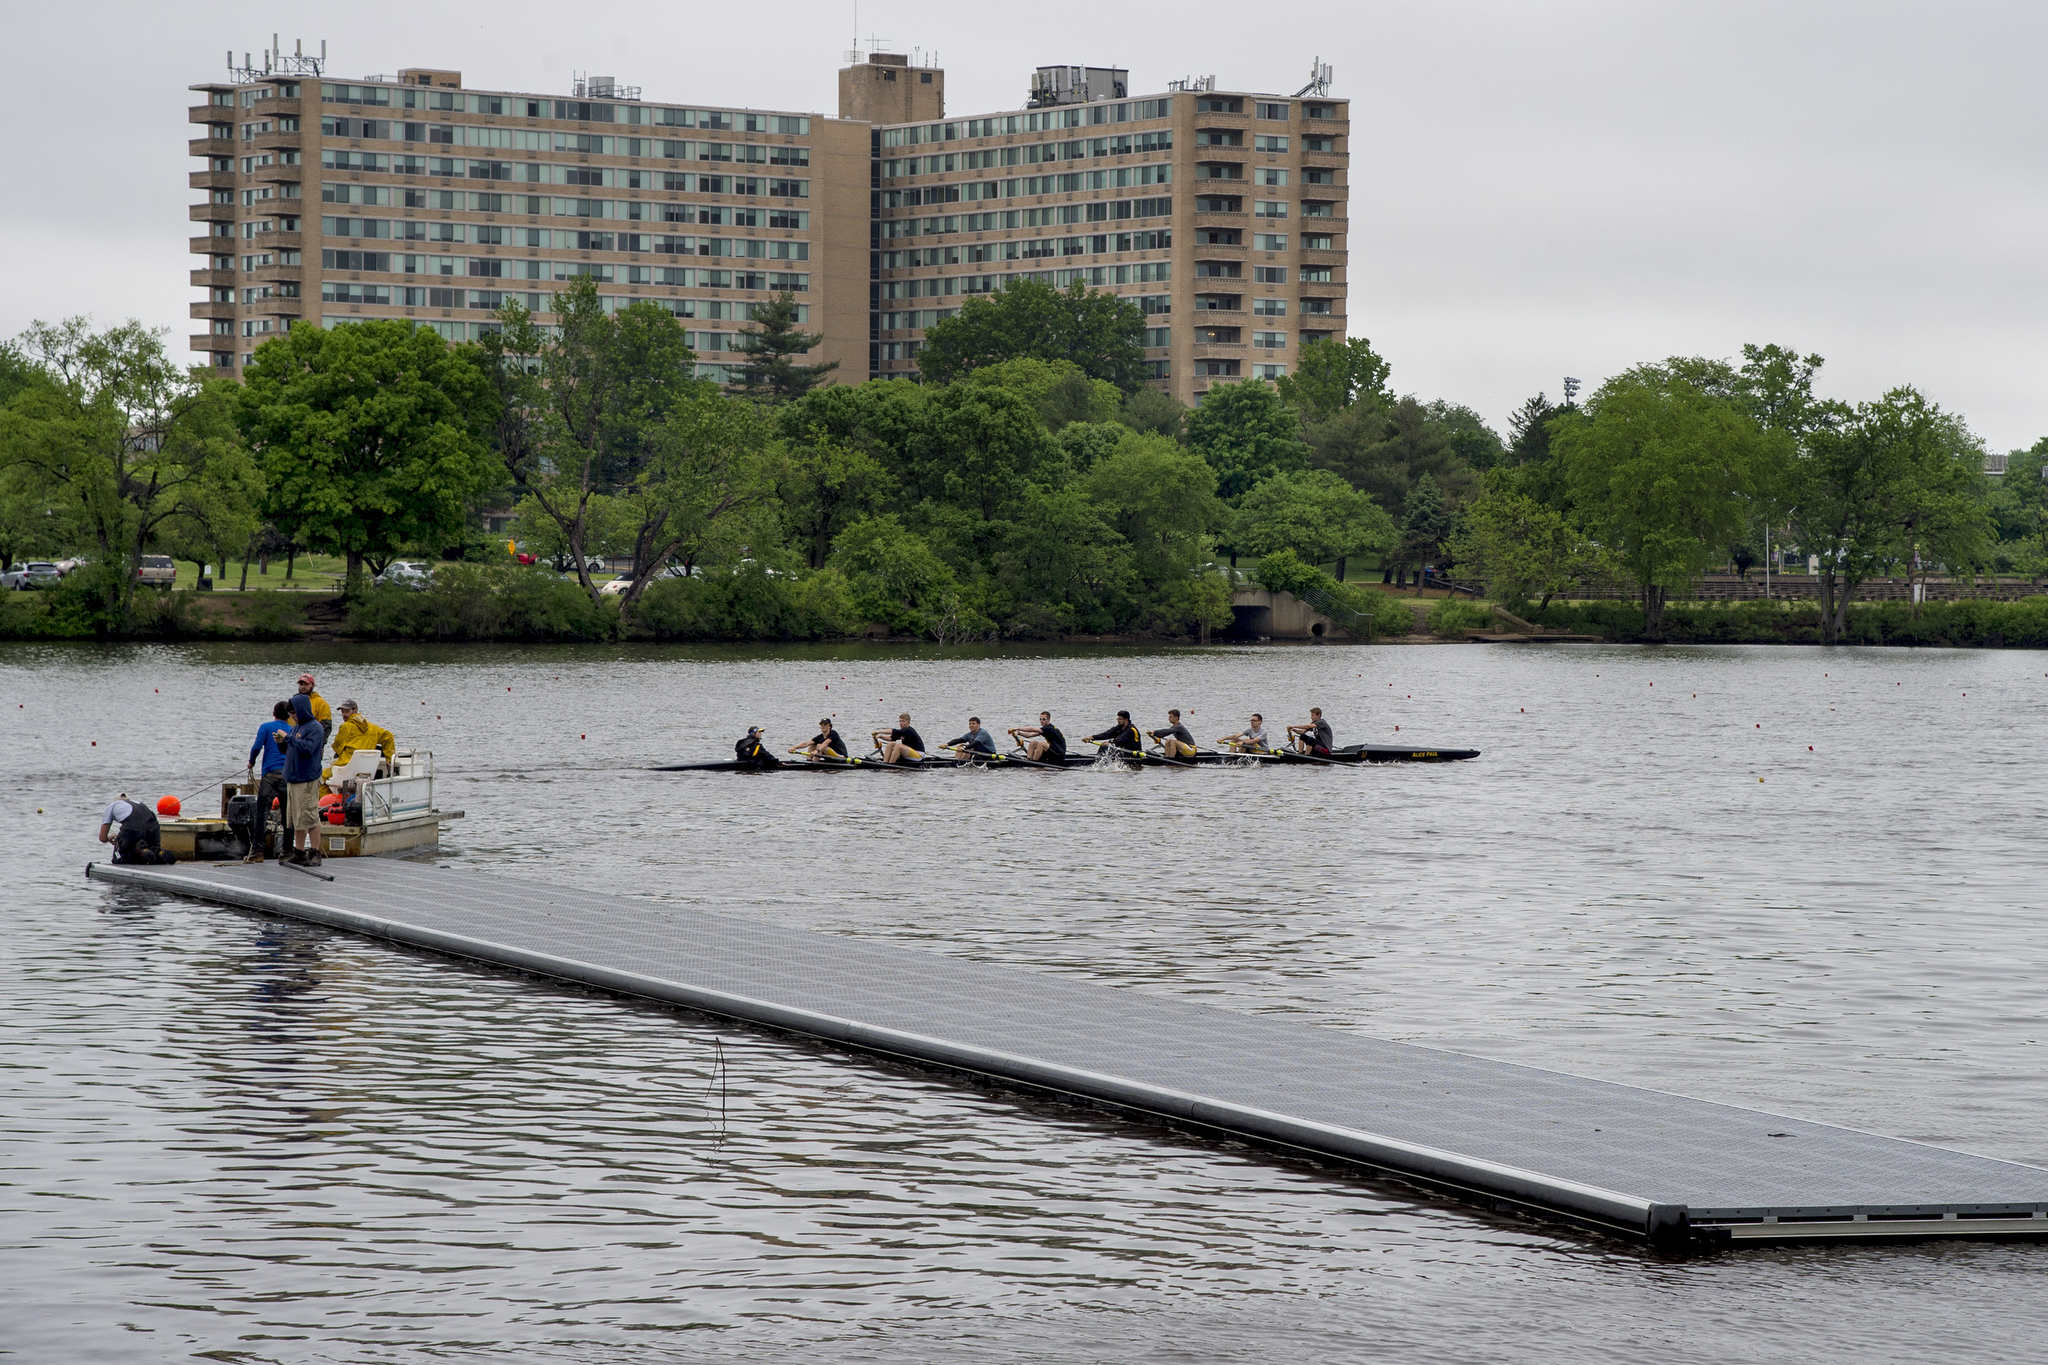 A high school crew team practices as dock sections are floated across the Cooper River.